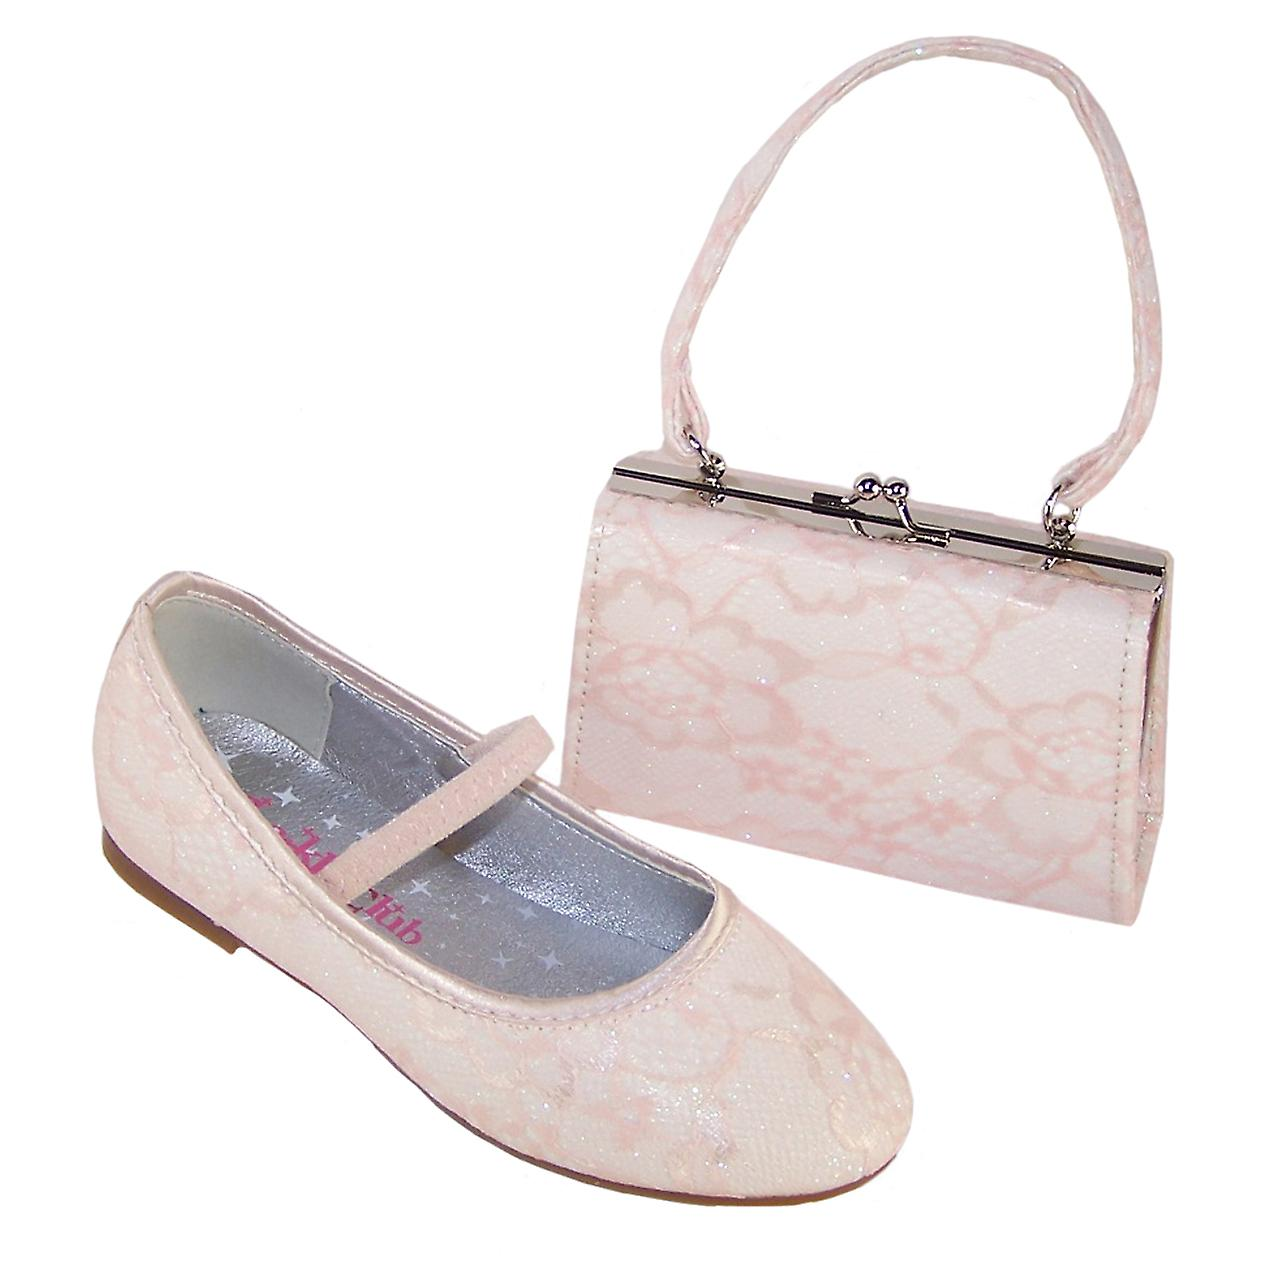 Girls sparkly ivory occasion shoes with peach net overlay and matching bag